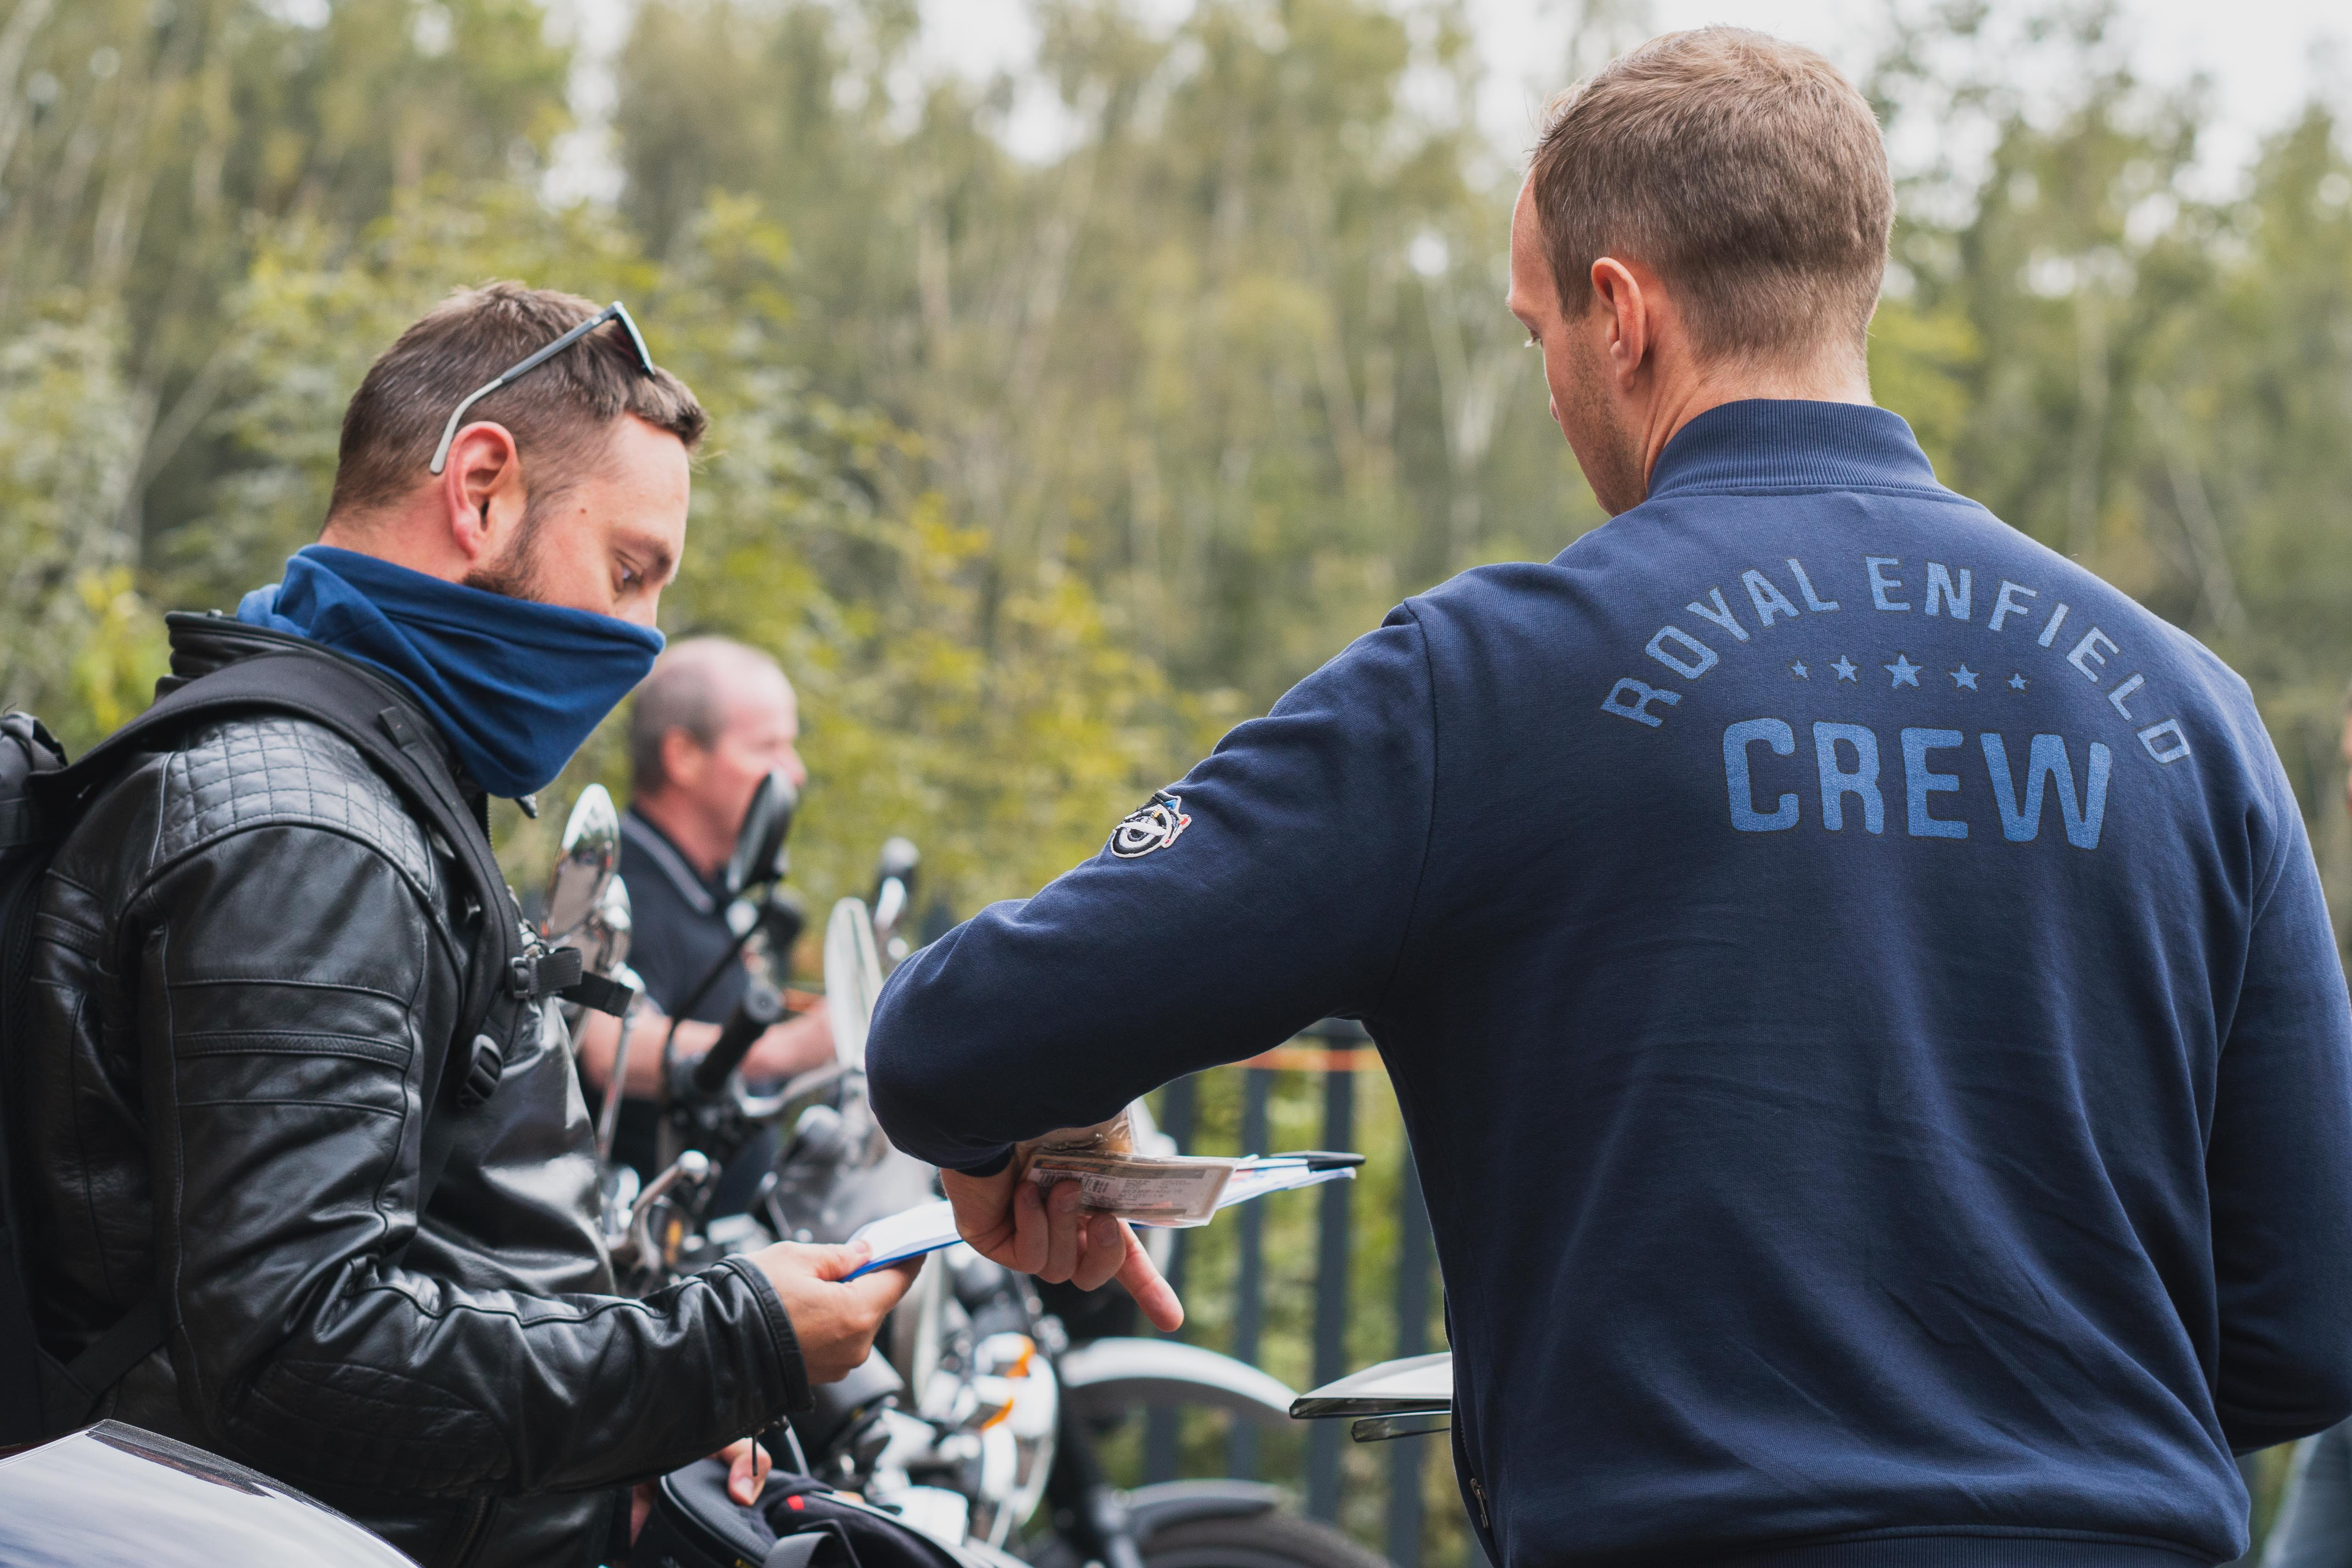 royal enfield baffle culture test ride event